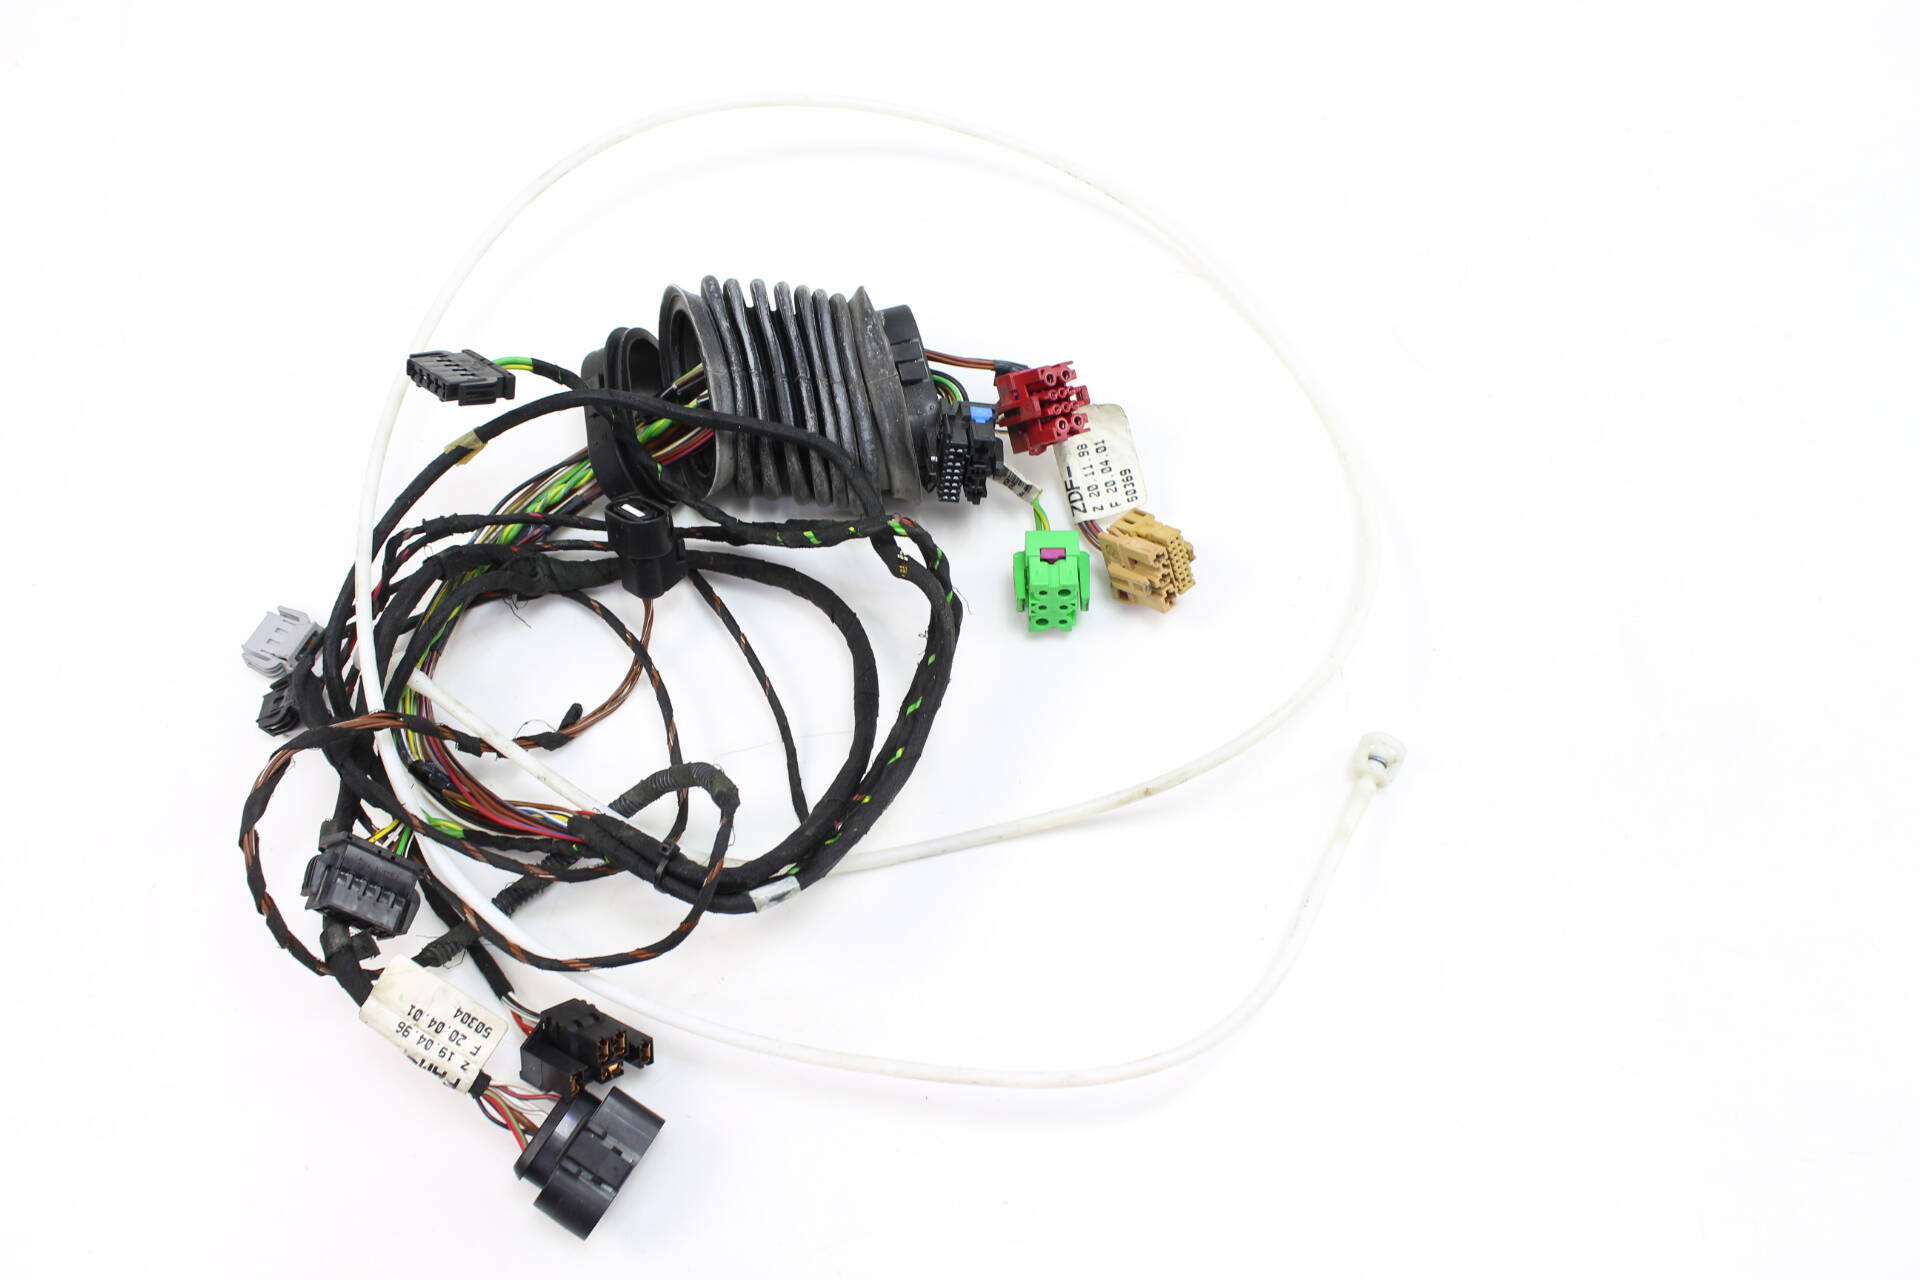 2000 2001 2002 AUDI S4 B5 - FRONT RIGHT DOOR WIRE / WIRING HARNESS  Audi S Wiring Harness on 2000 ford taurus wiring harness, 2000 subaru outback wiring harness, 2000 chevrolet blazer wiring harness, 2000 nissan xterra wiring harness, 2000 toyota camry wiring harness, 2000 honda civic wiring harness,